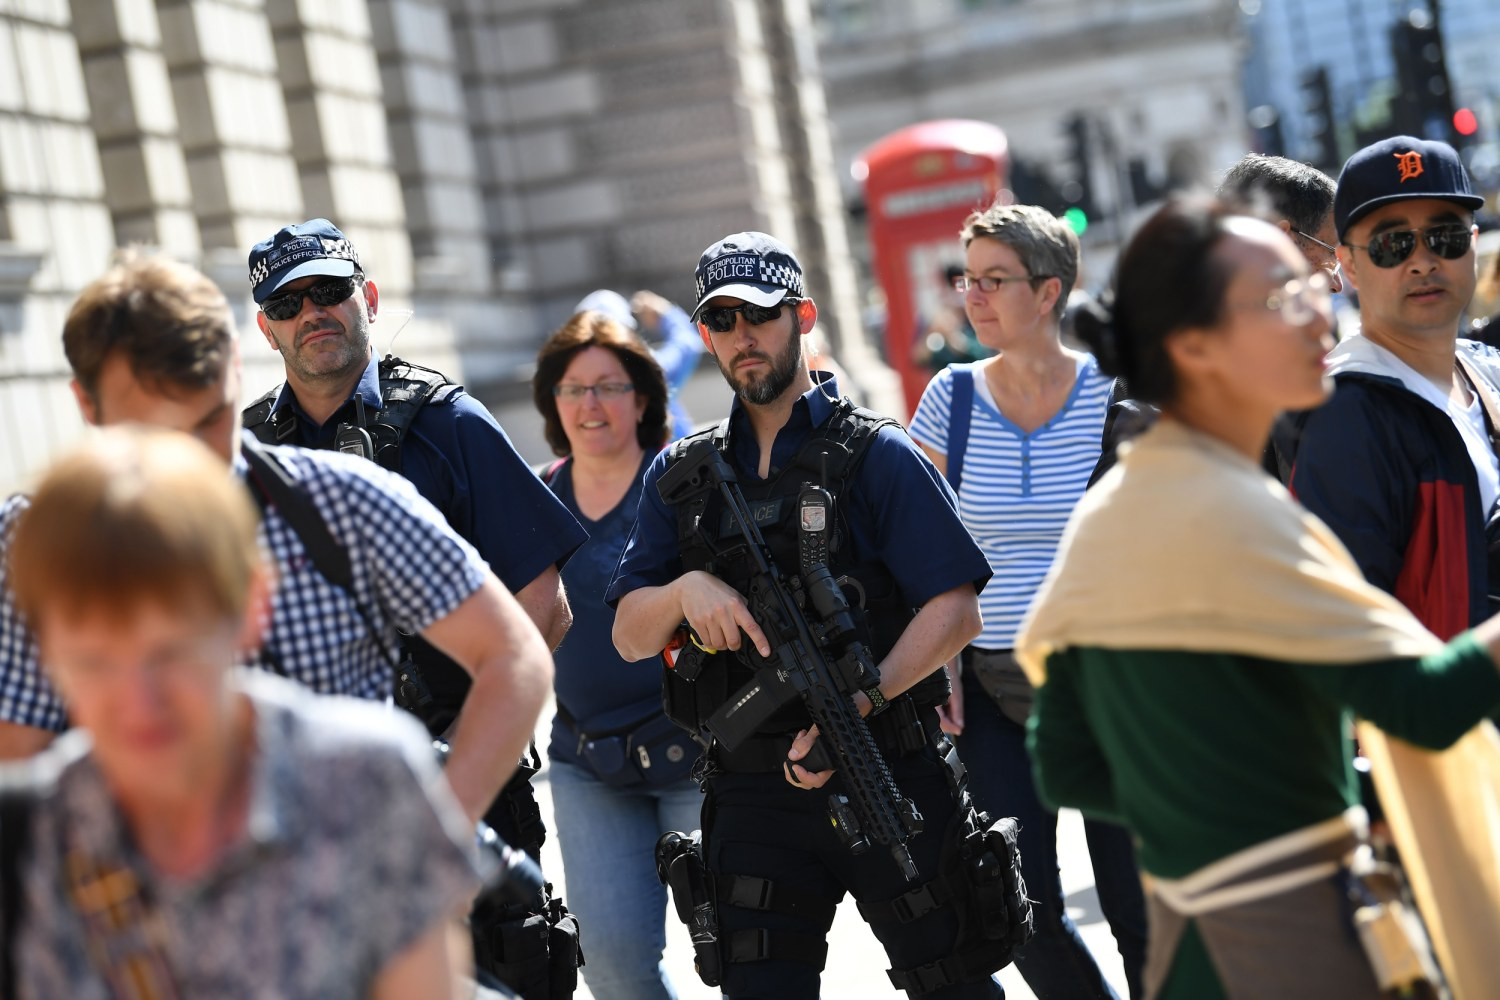 3 more arrested in Manchester; attacker's Libya ties probed